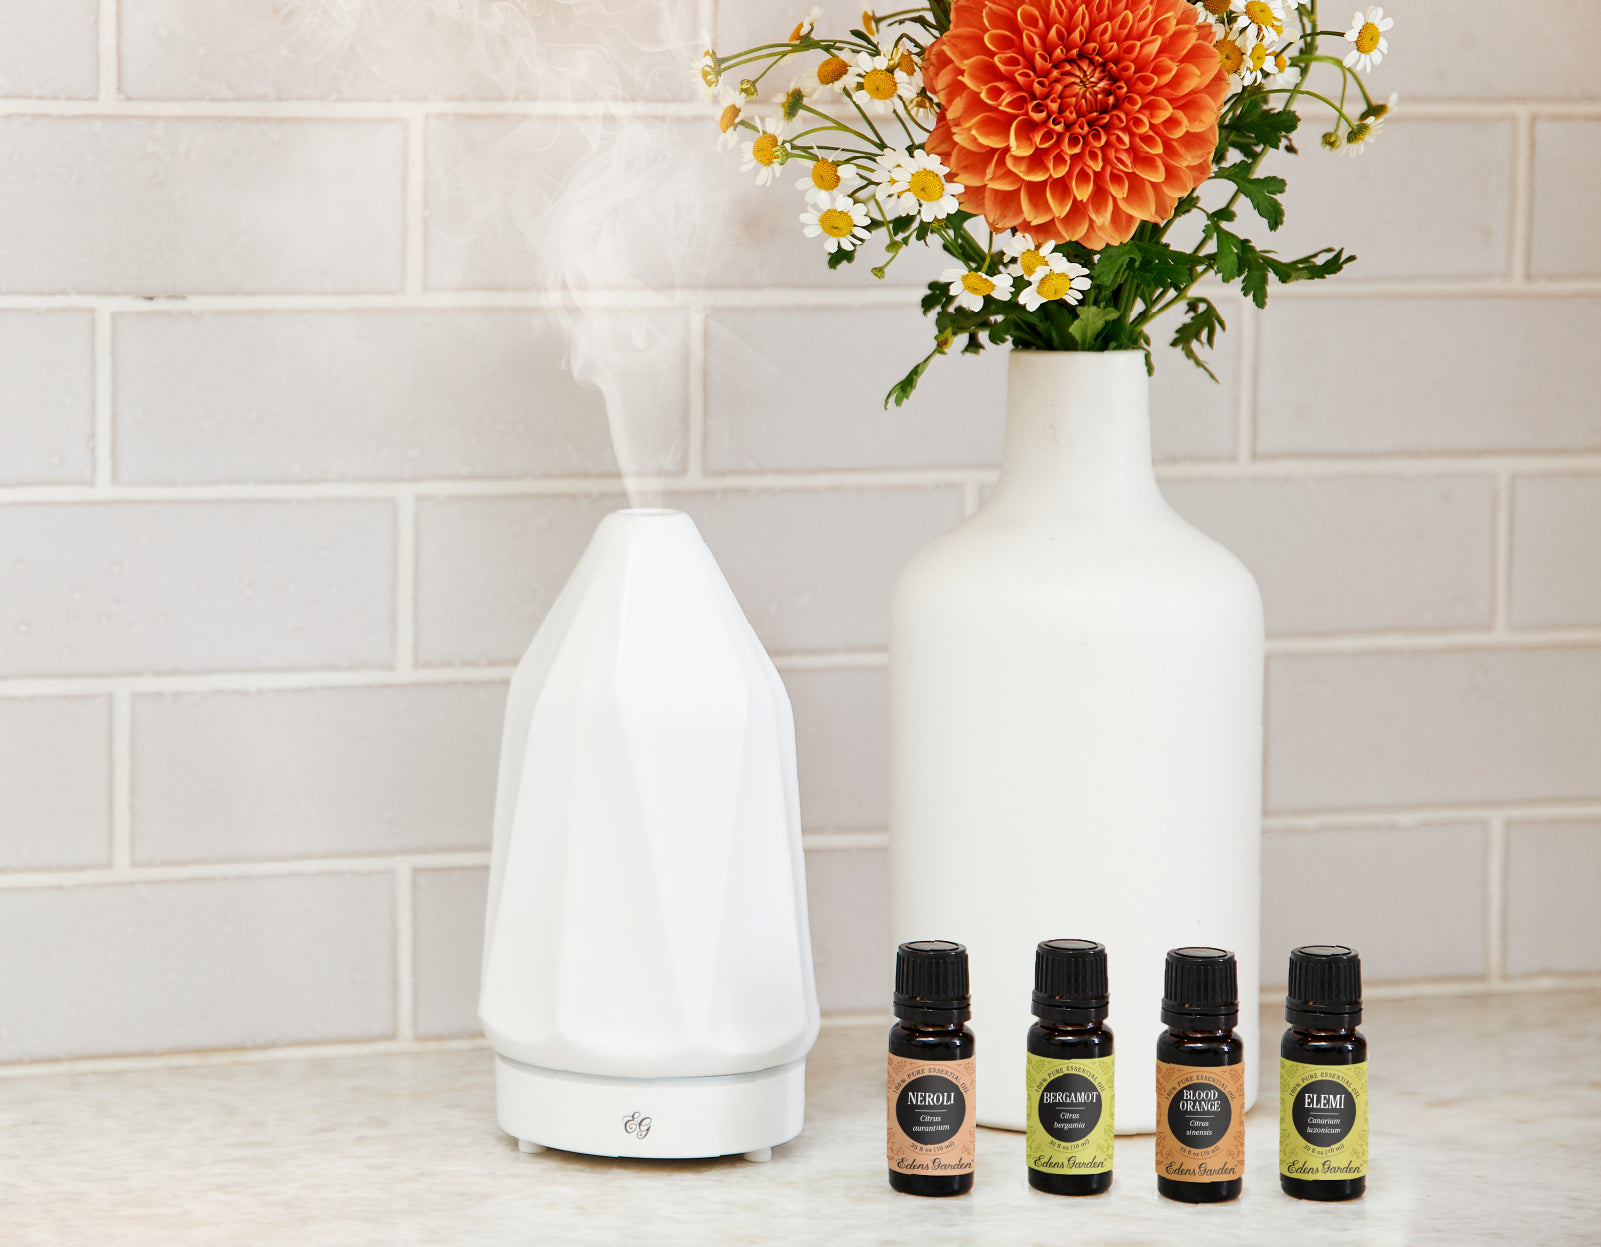 Our Favorite Essential Oil Diffuser Blends For Spring